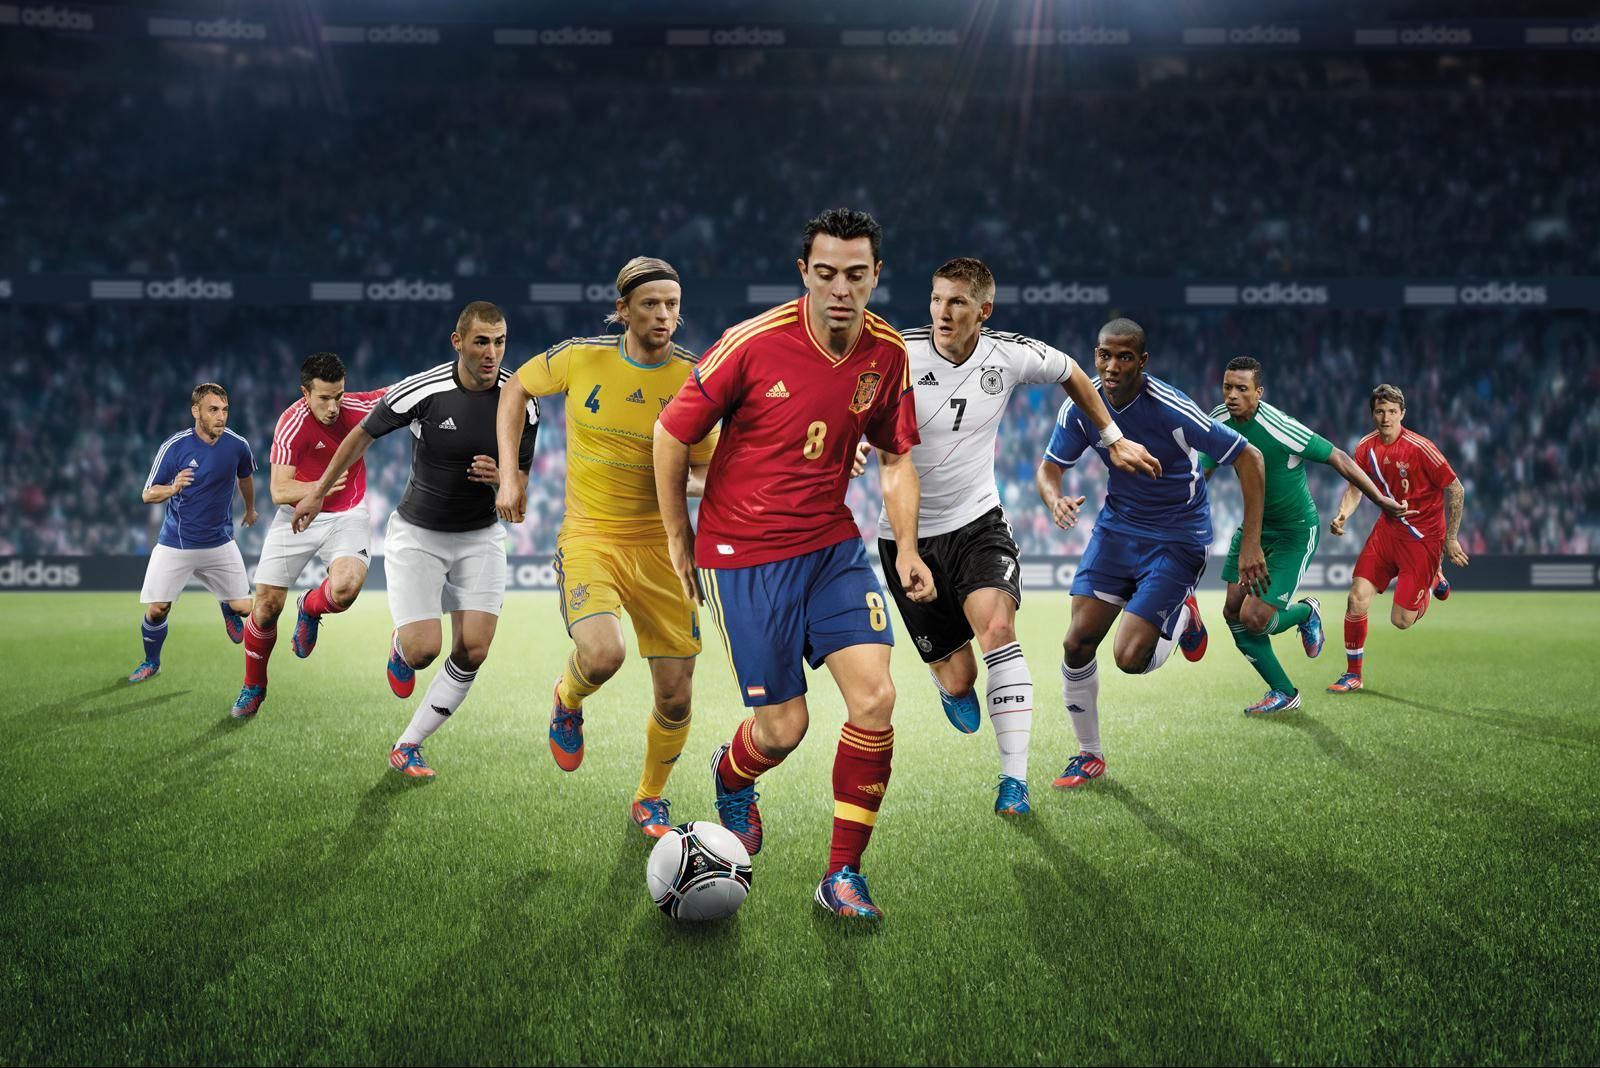 Wallpapermisc Famous Football Players Hd Wallpaper 21 1600 X 1068 Free Top High Quality Desktop Wallpaper In 4k And Hd For Ultra High Definition T Sepak Bola